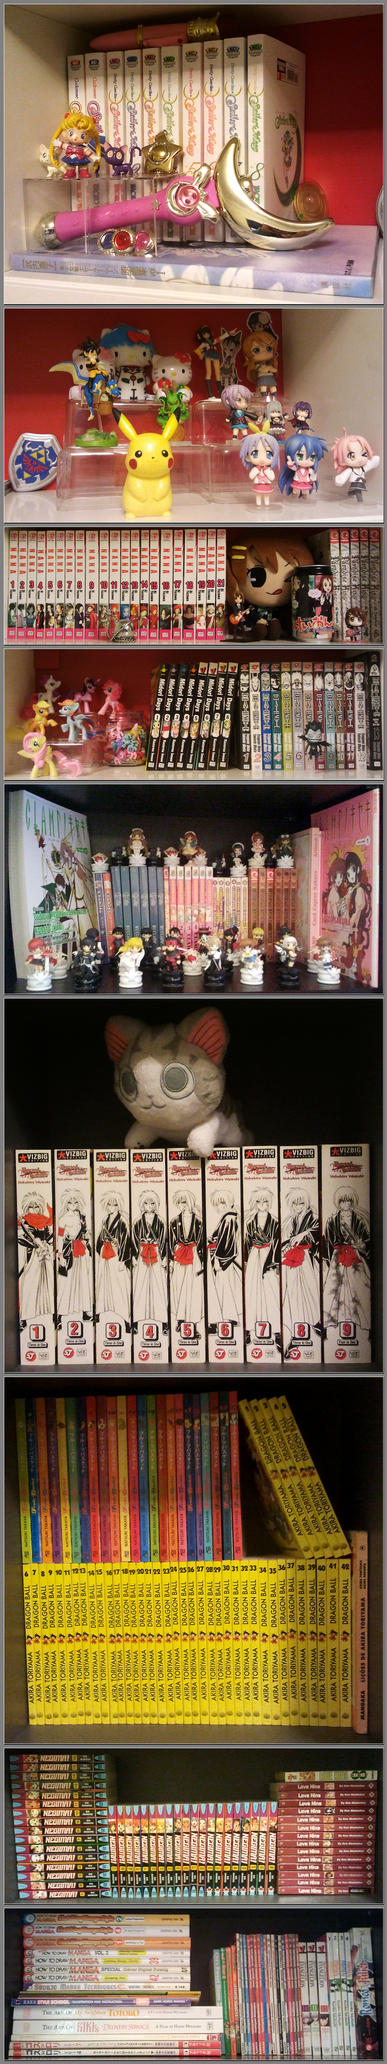 Updated Manga Colection by Cheila